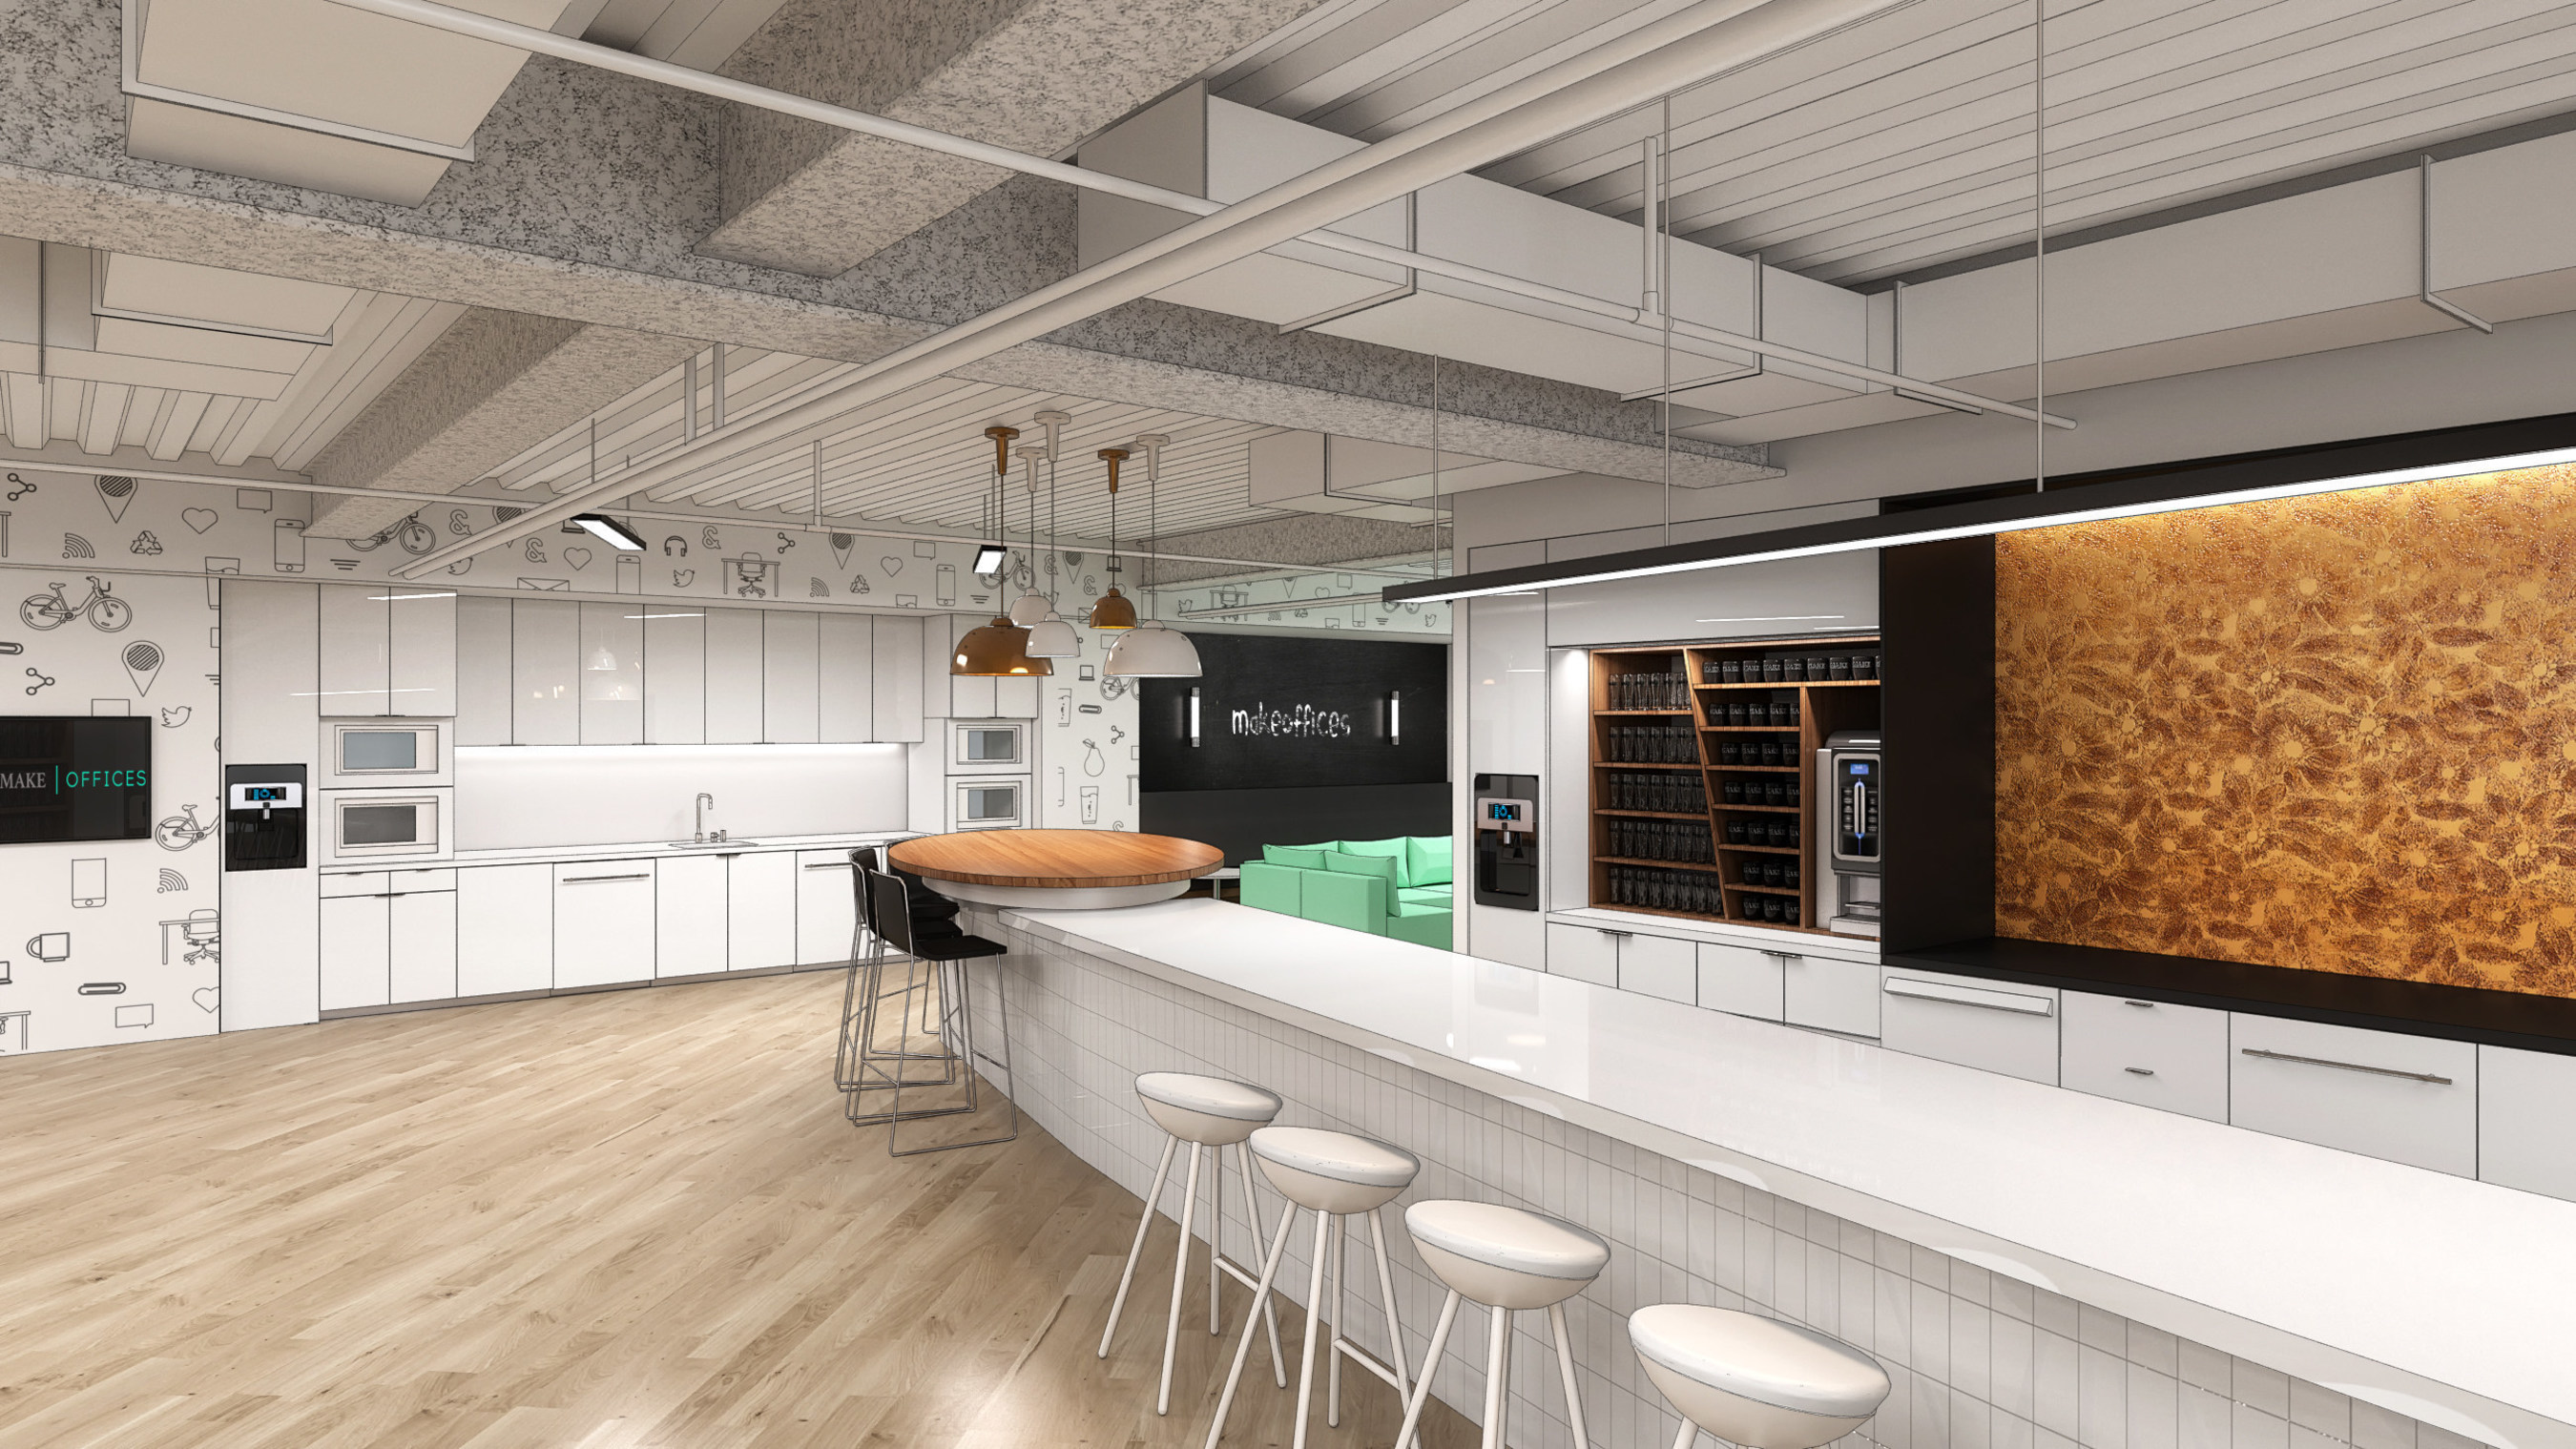 National Coworking Leader MakeOffices to Open on Iconic K Street